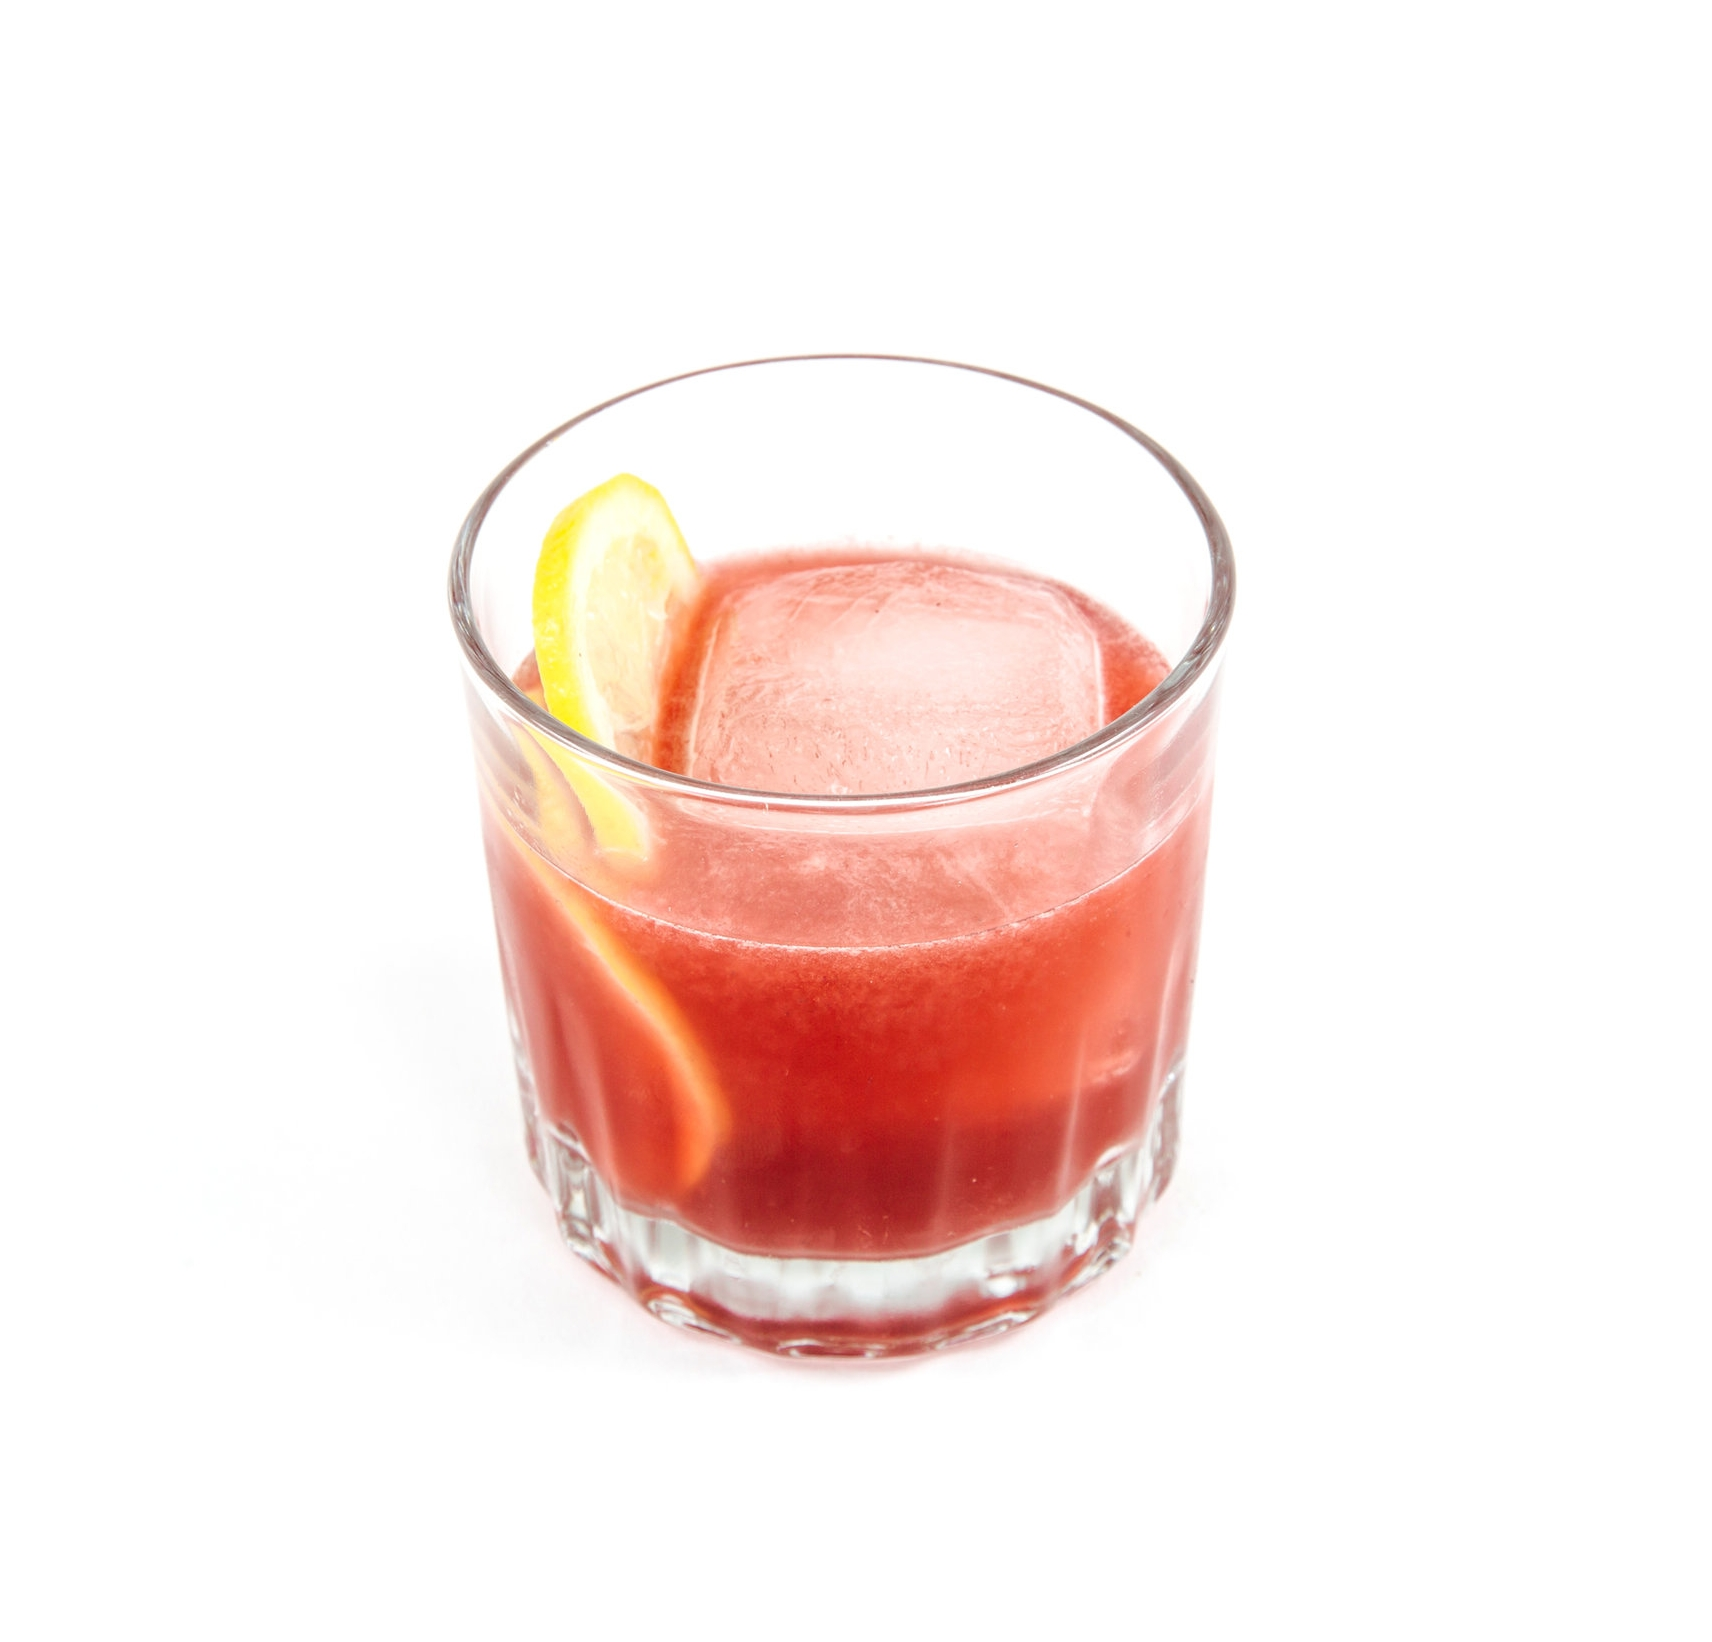 BAJA JUICE BOX - 1 oz nostrum blackberry cacao nib sage shrub1 oz fresh lemon juice1/4 oz cinnamon syrup4 oz filtered water2 dashes chocolate bitters (optional)directions: shake first 4 ingredients with ice. strain and top with soda water.